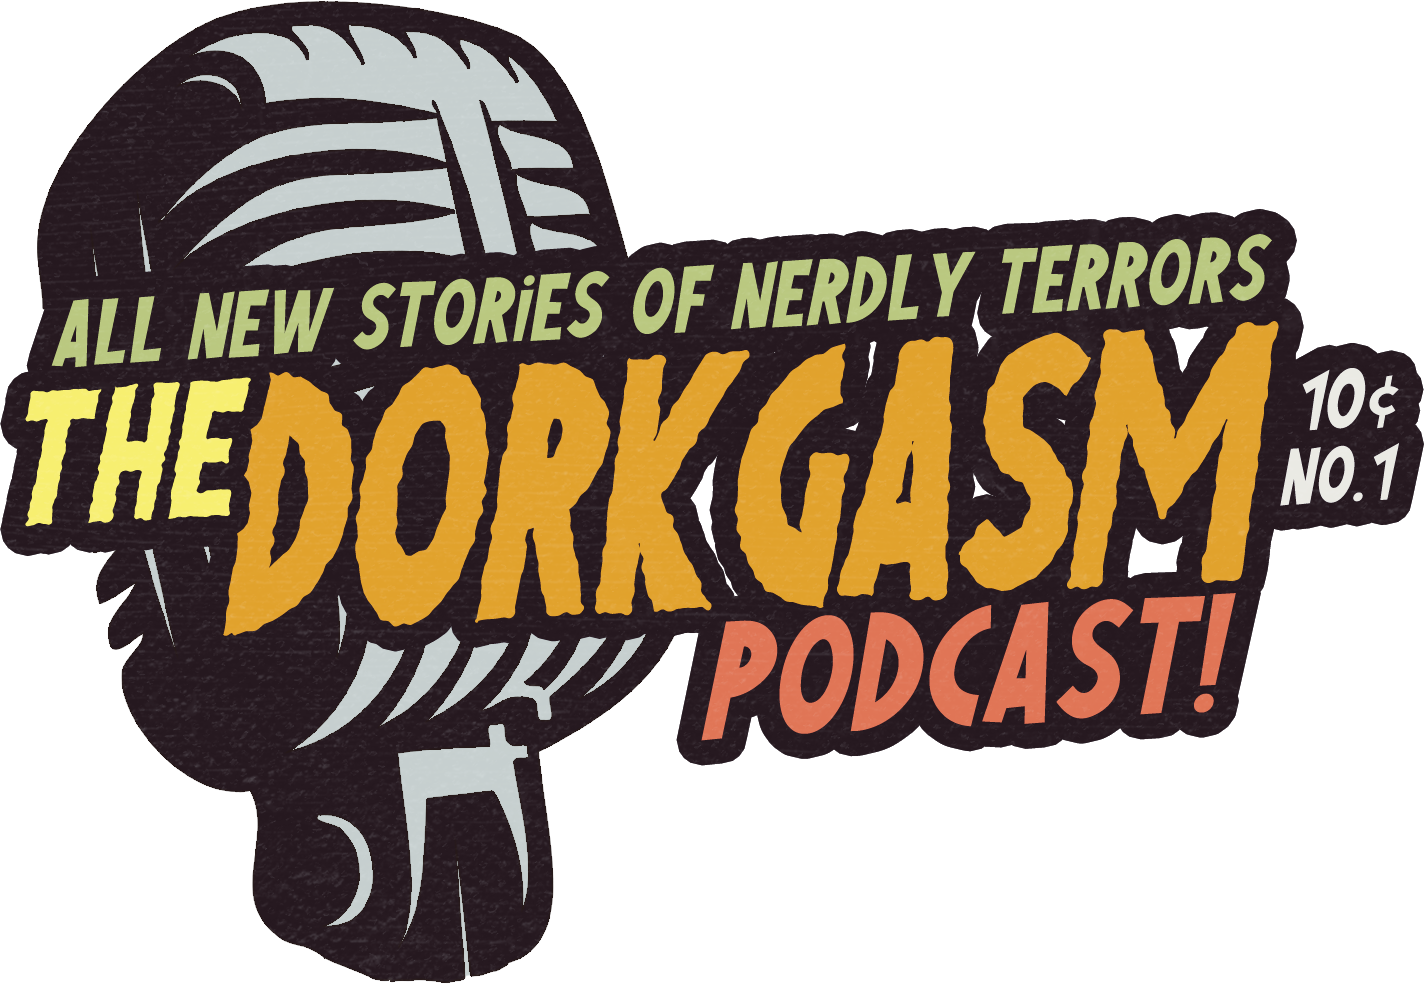 The Dorkgasm Podcast